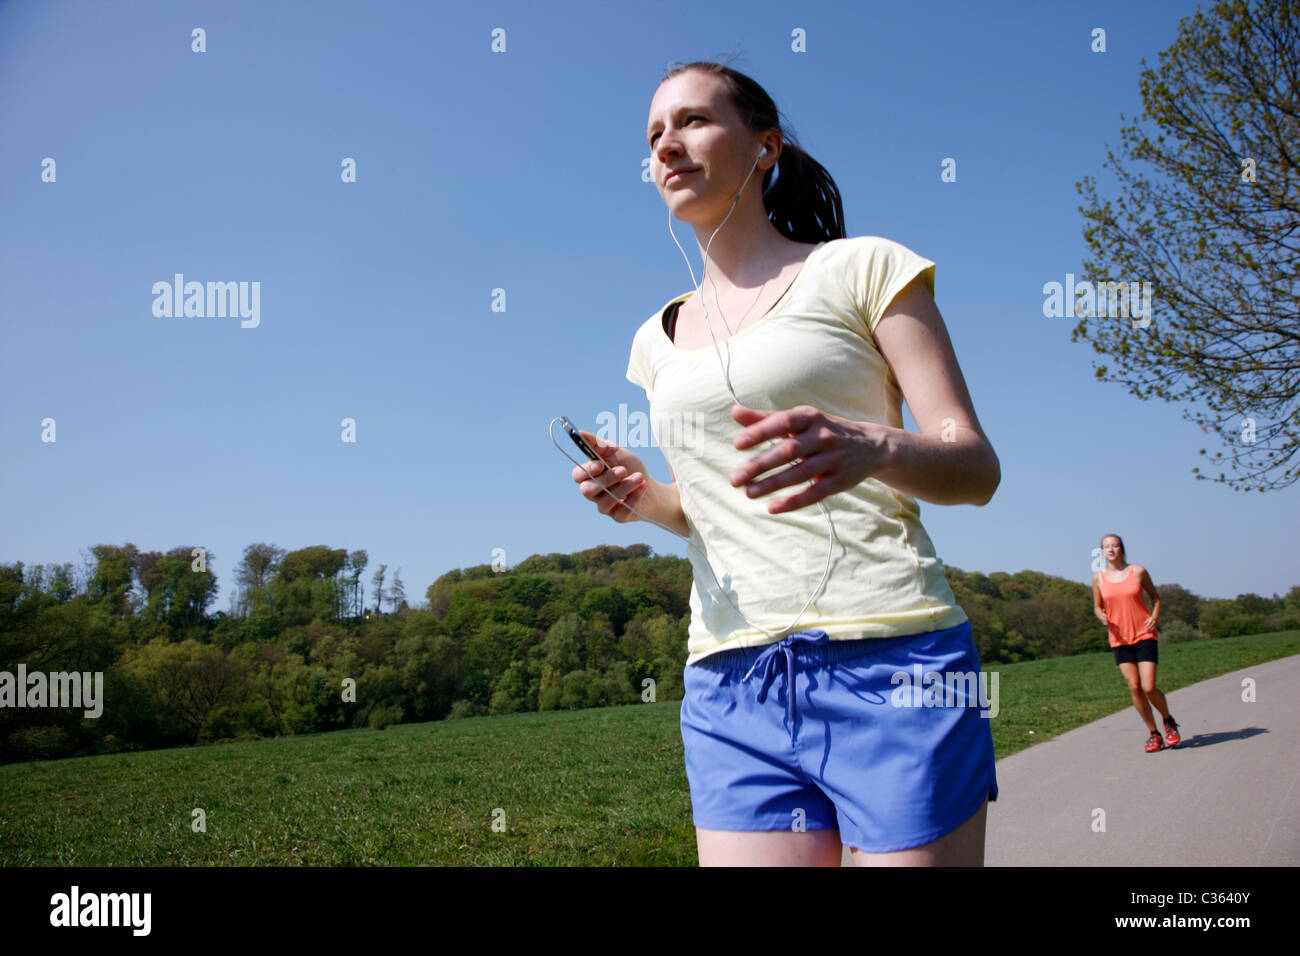 Action Mp3 Music Outdoor Stock Photos & Action Mp3 Music